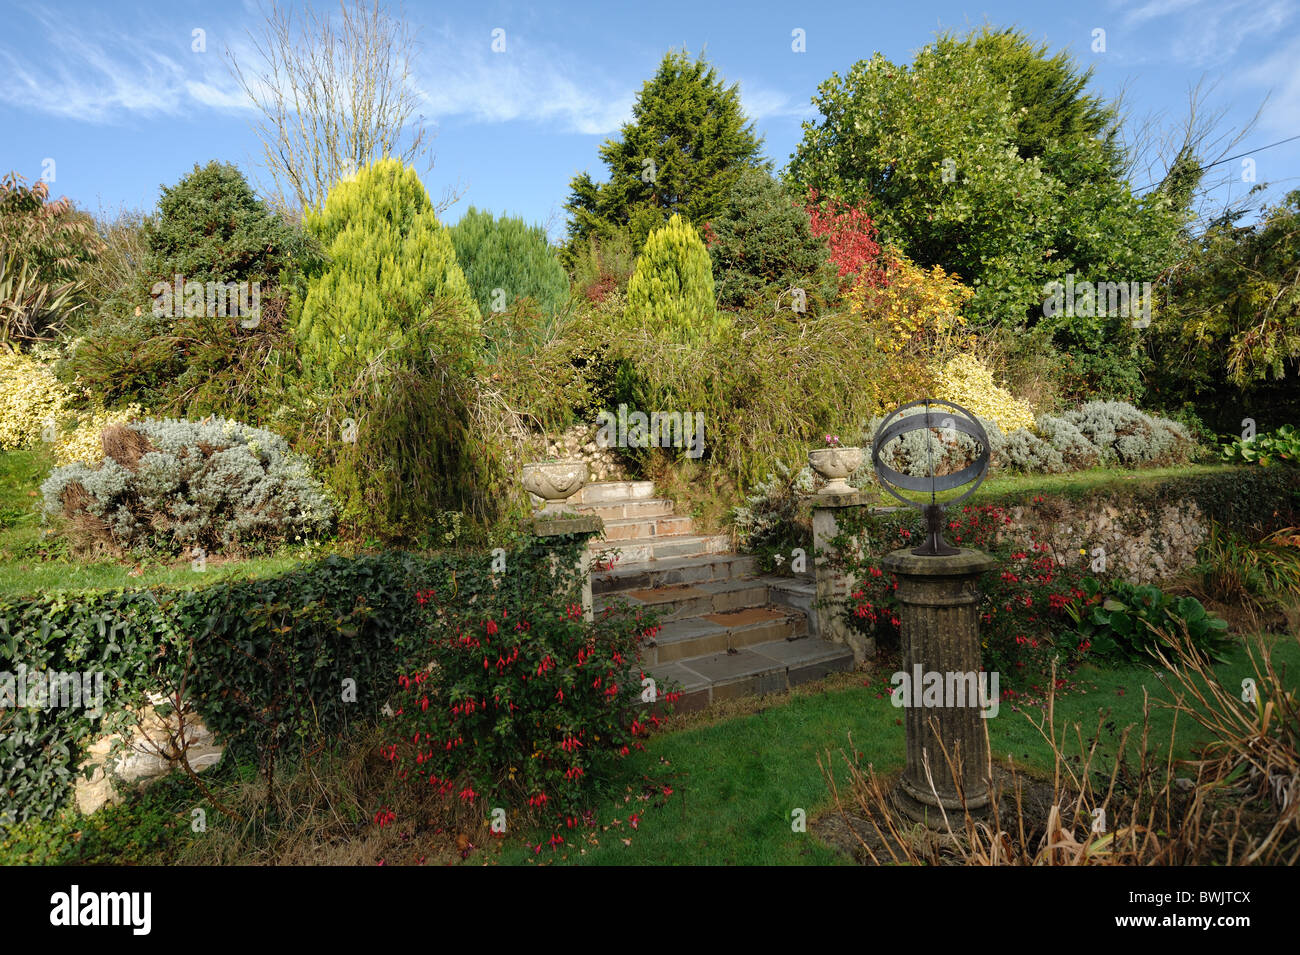 Terraced Devon garden with shrubs and plants in autumn colours - Stock Image